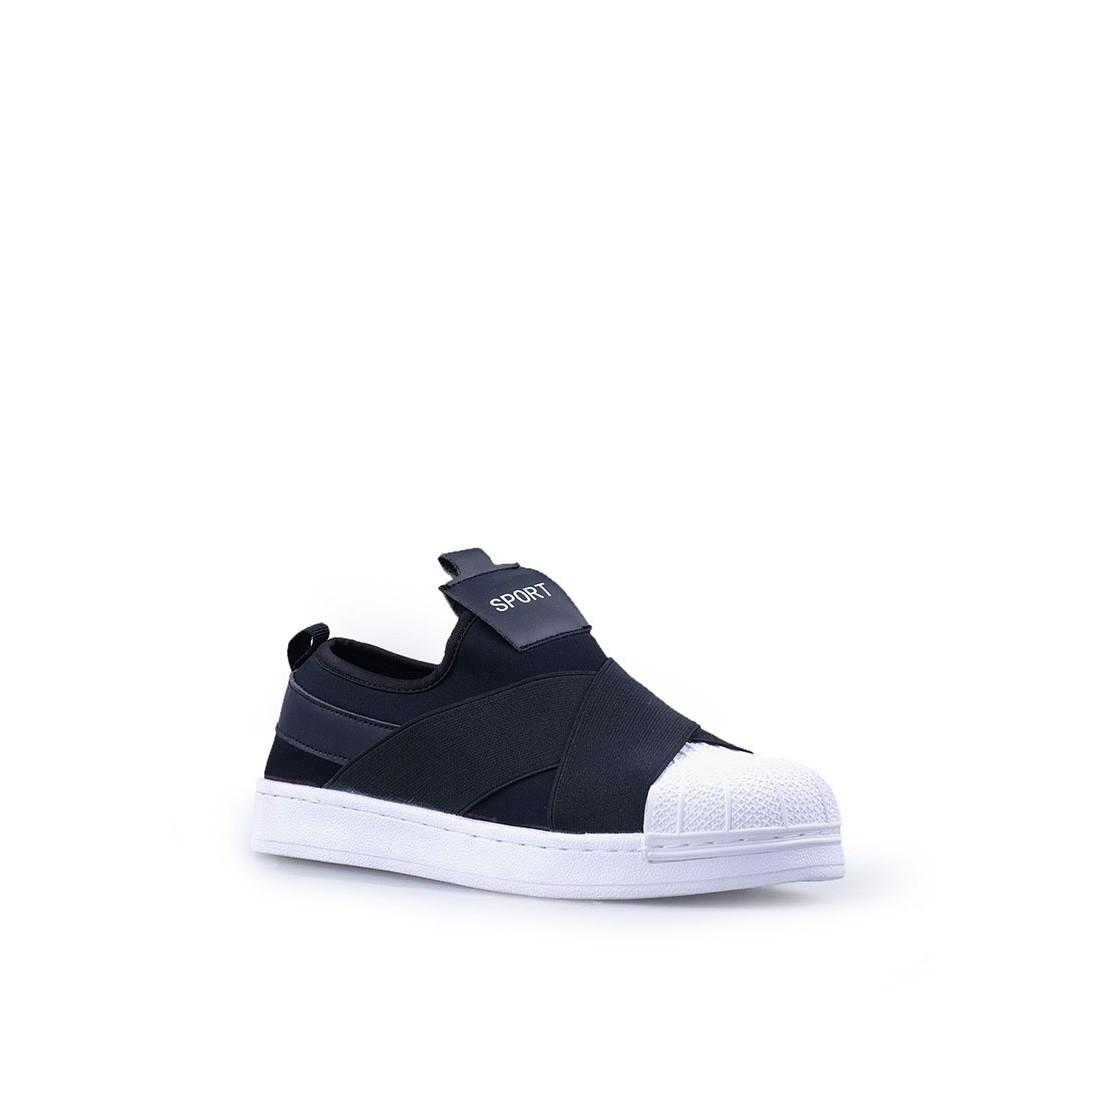 Buy Sell Cheapest Clarette Sneakers Shelby Best Quality Product Christelle White Catriona Black